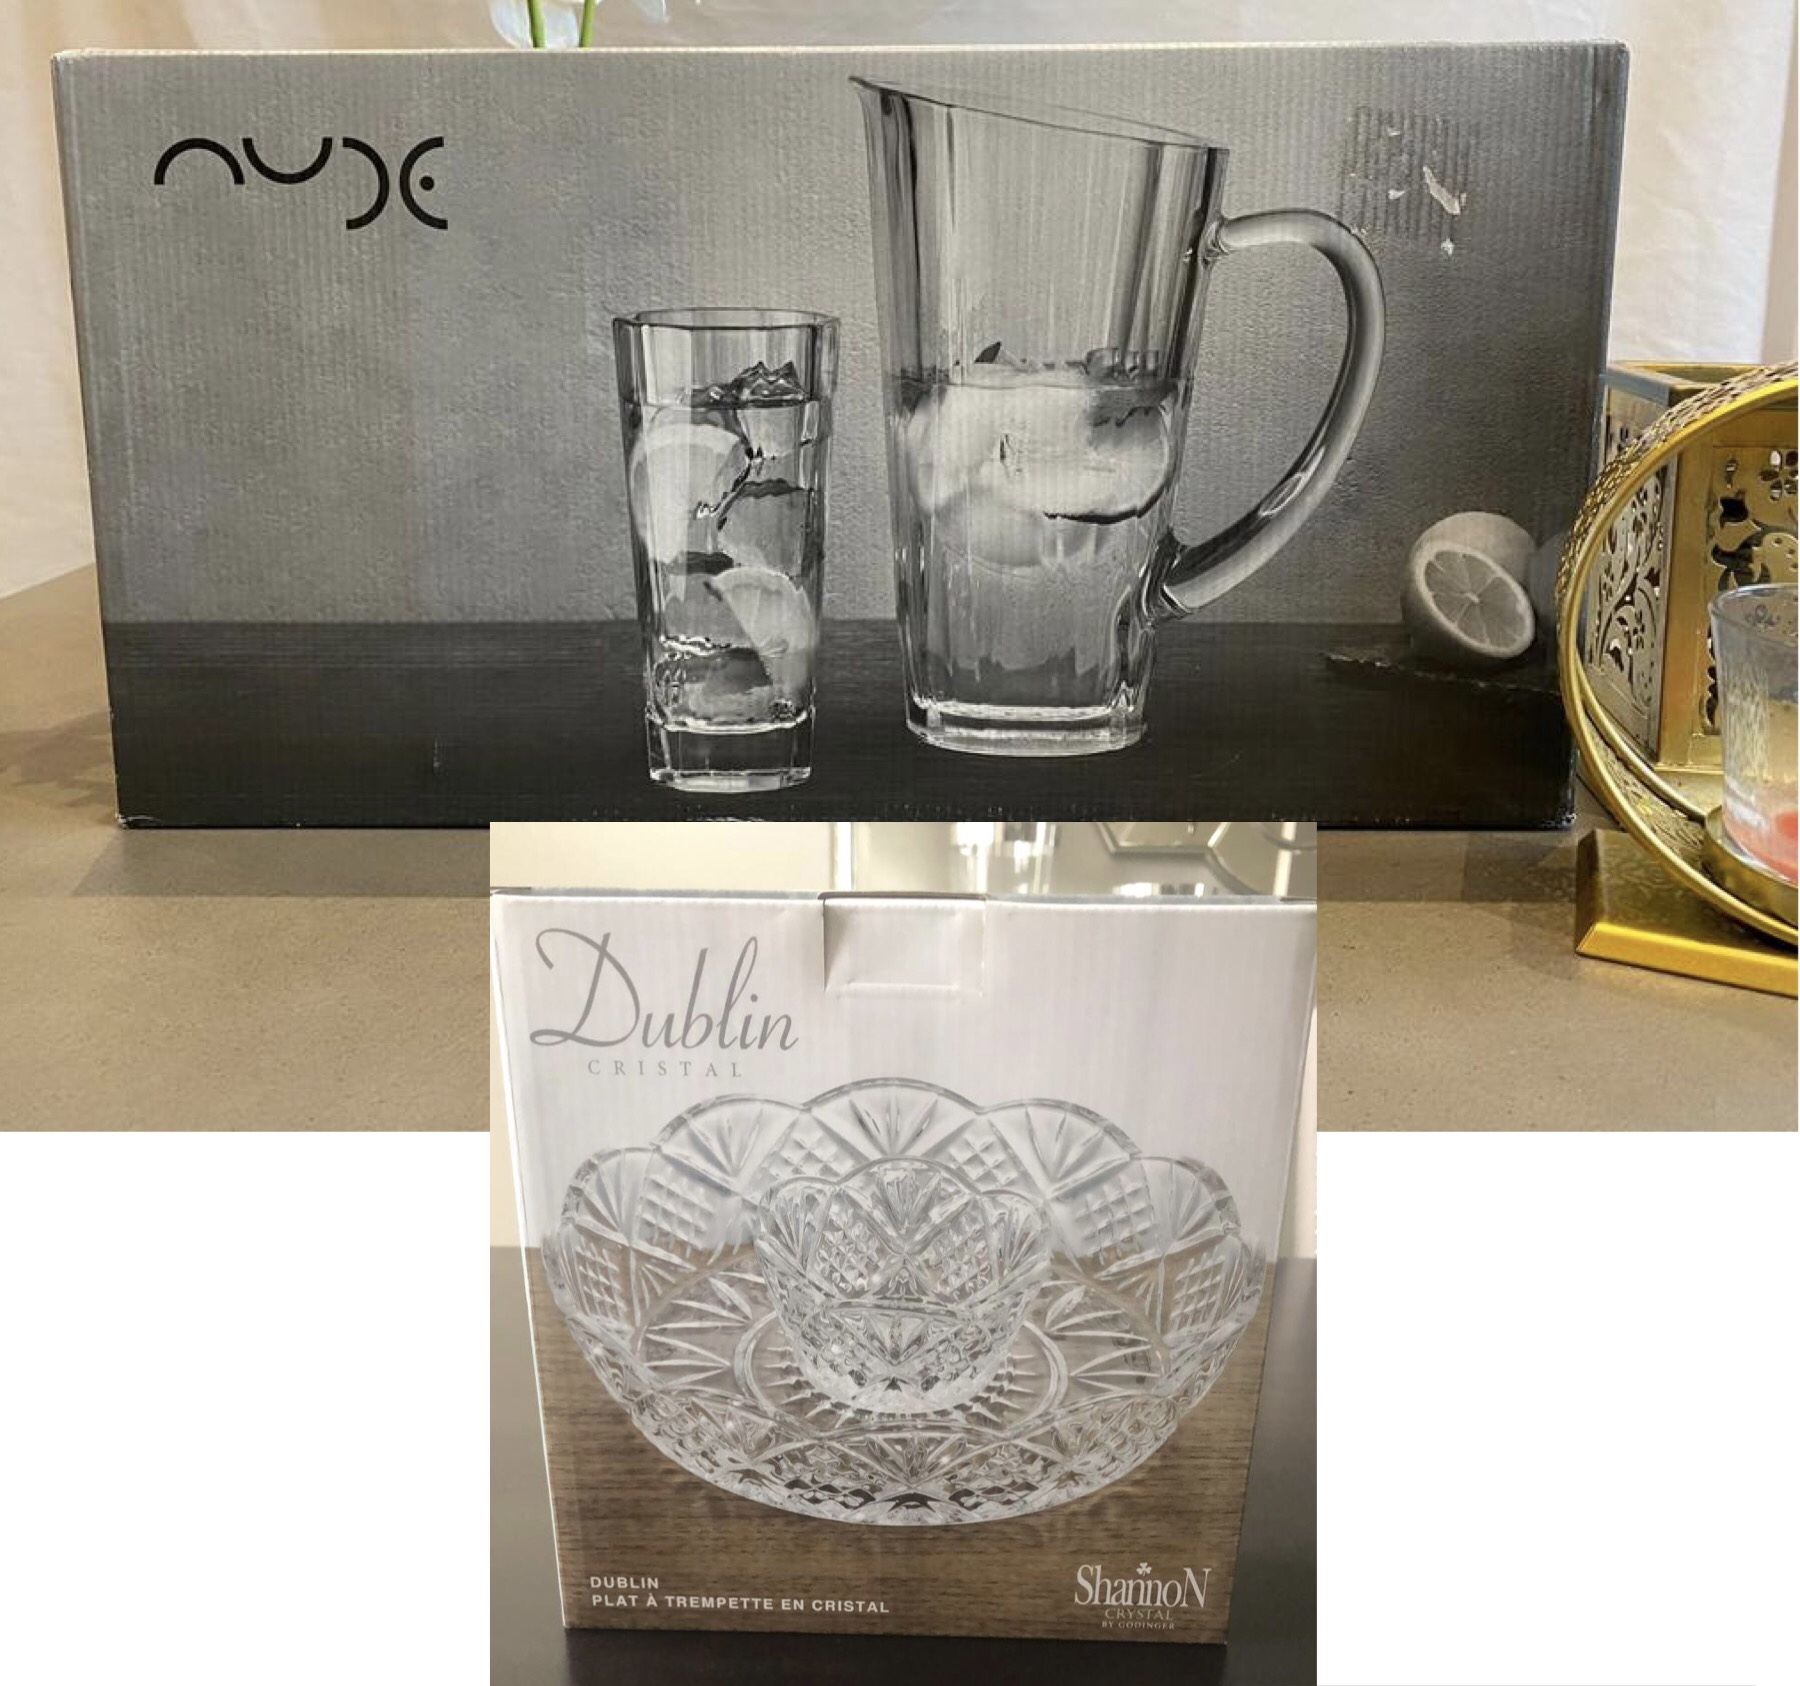 Auction For Glass Jug & Tumbler Set with Crystal Serving Bowl